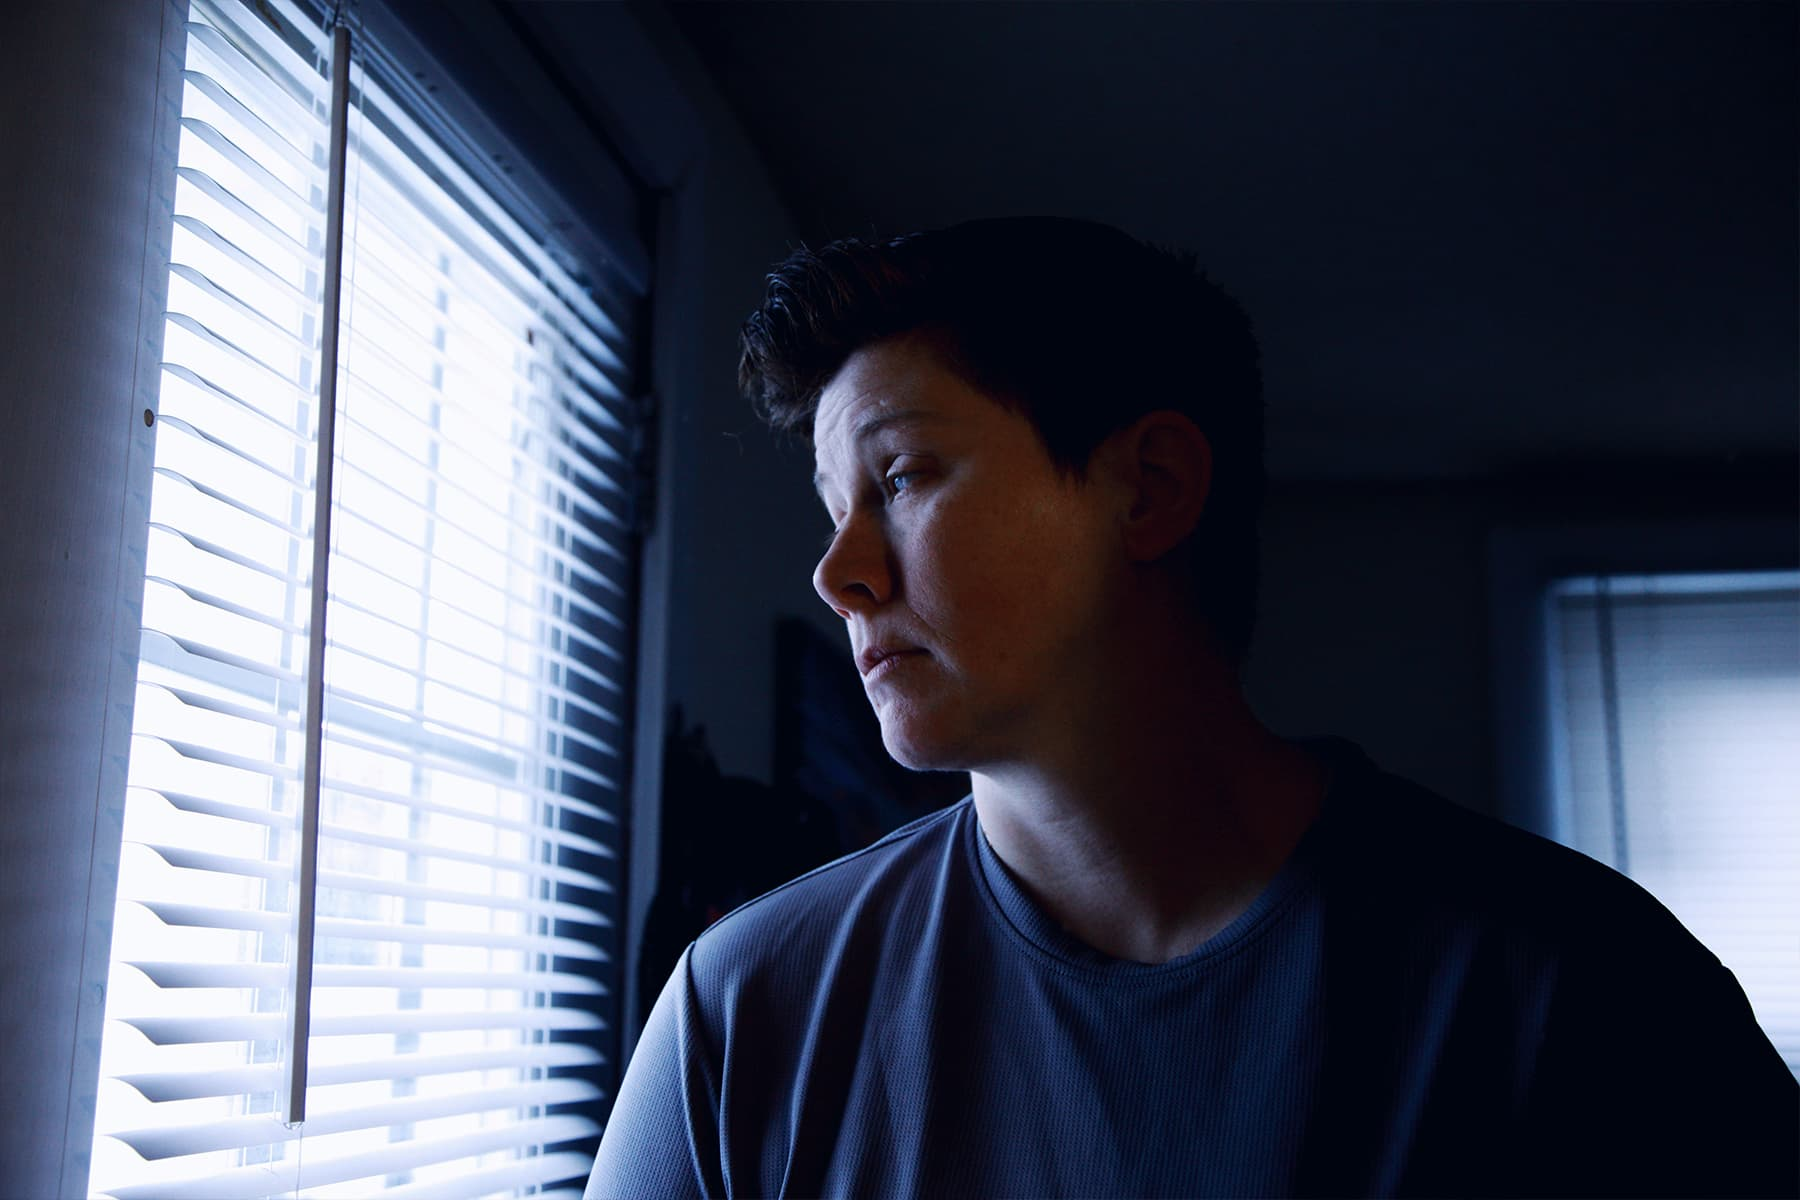 photo of woman peering out window